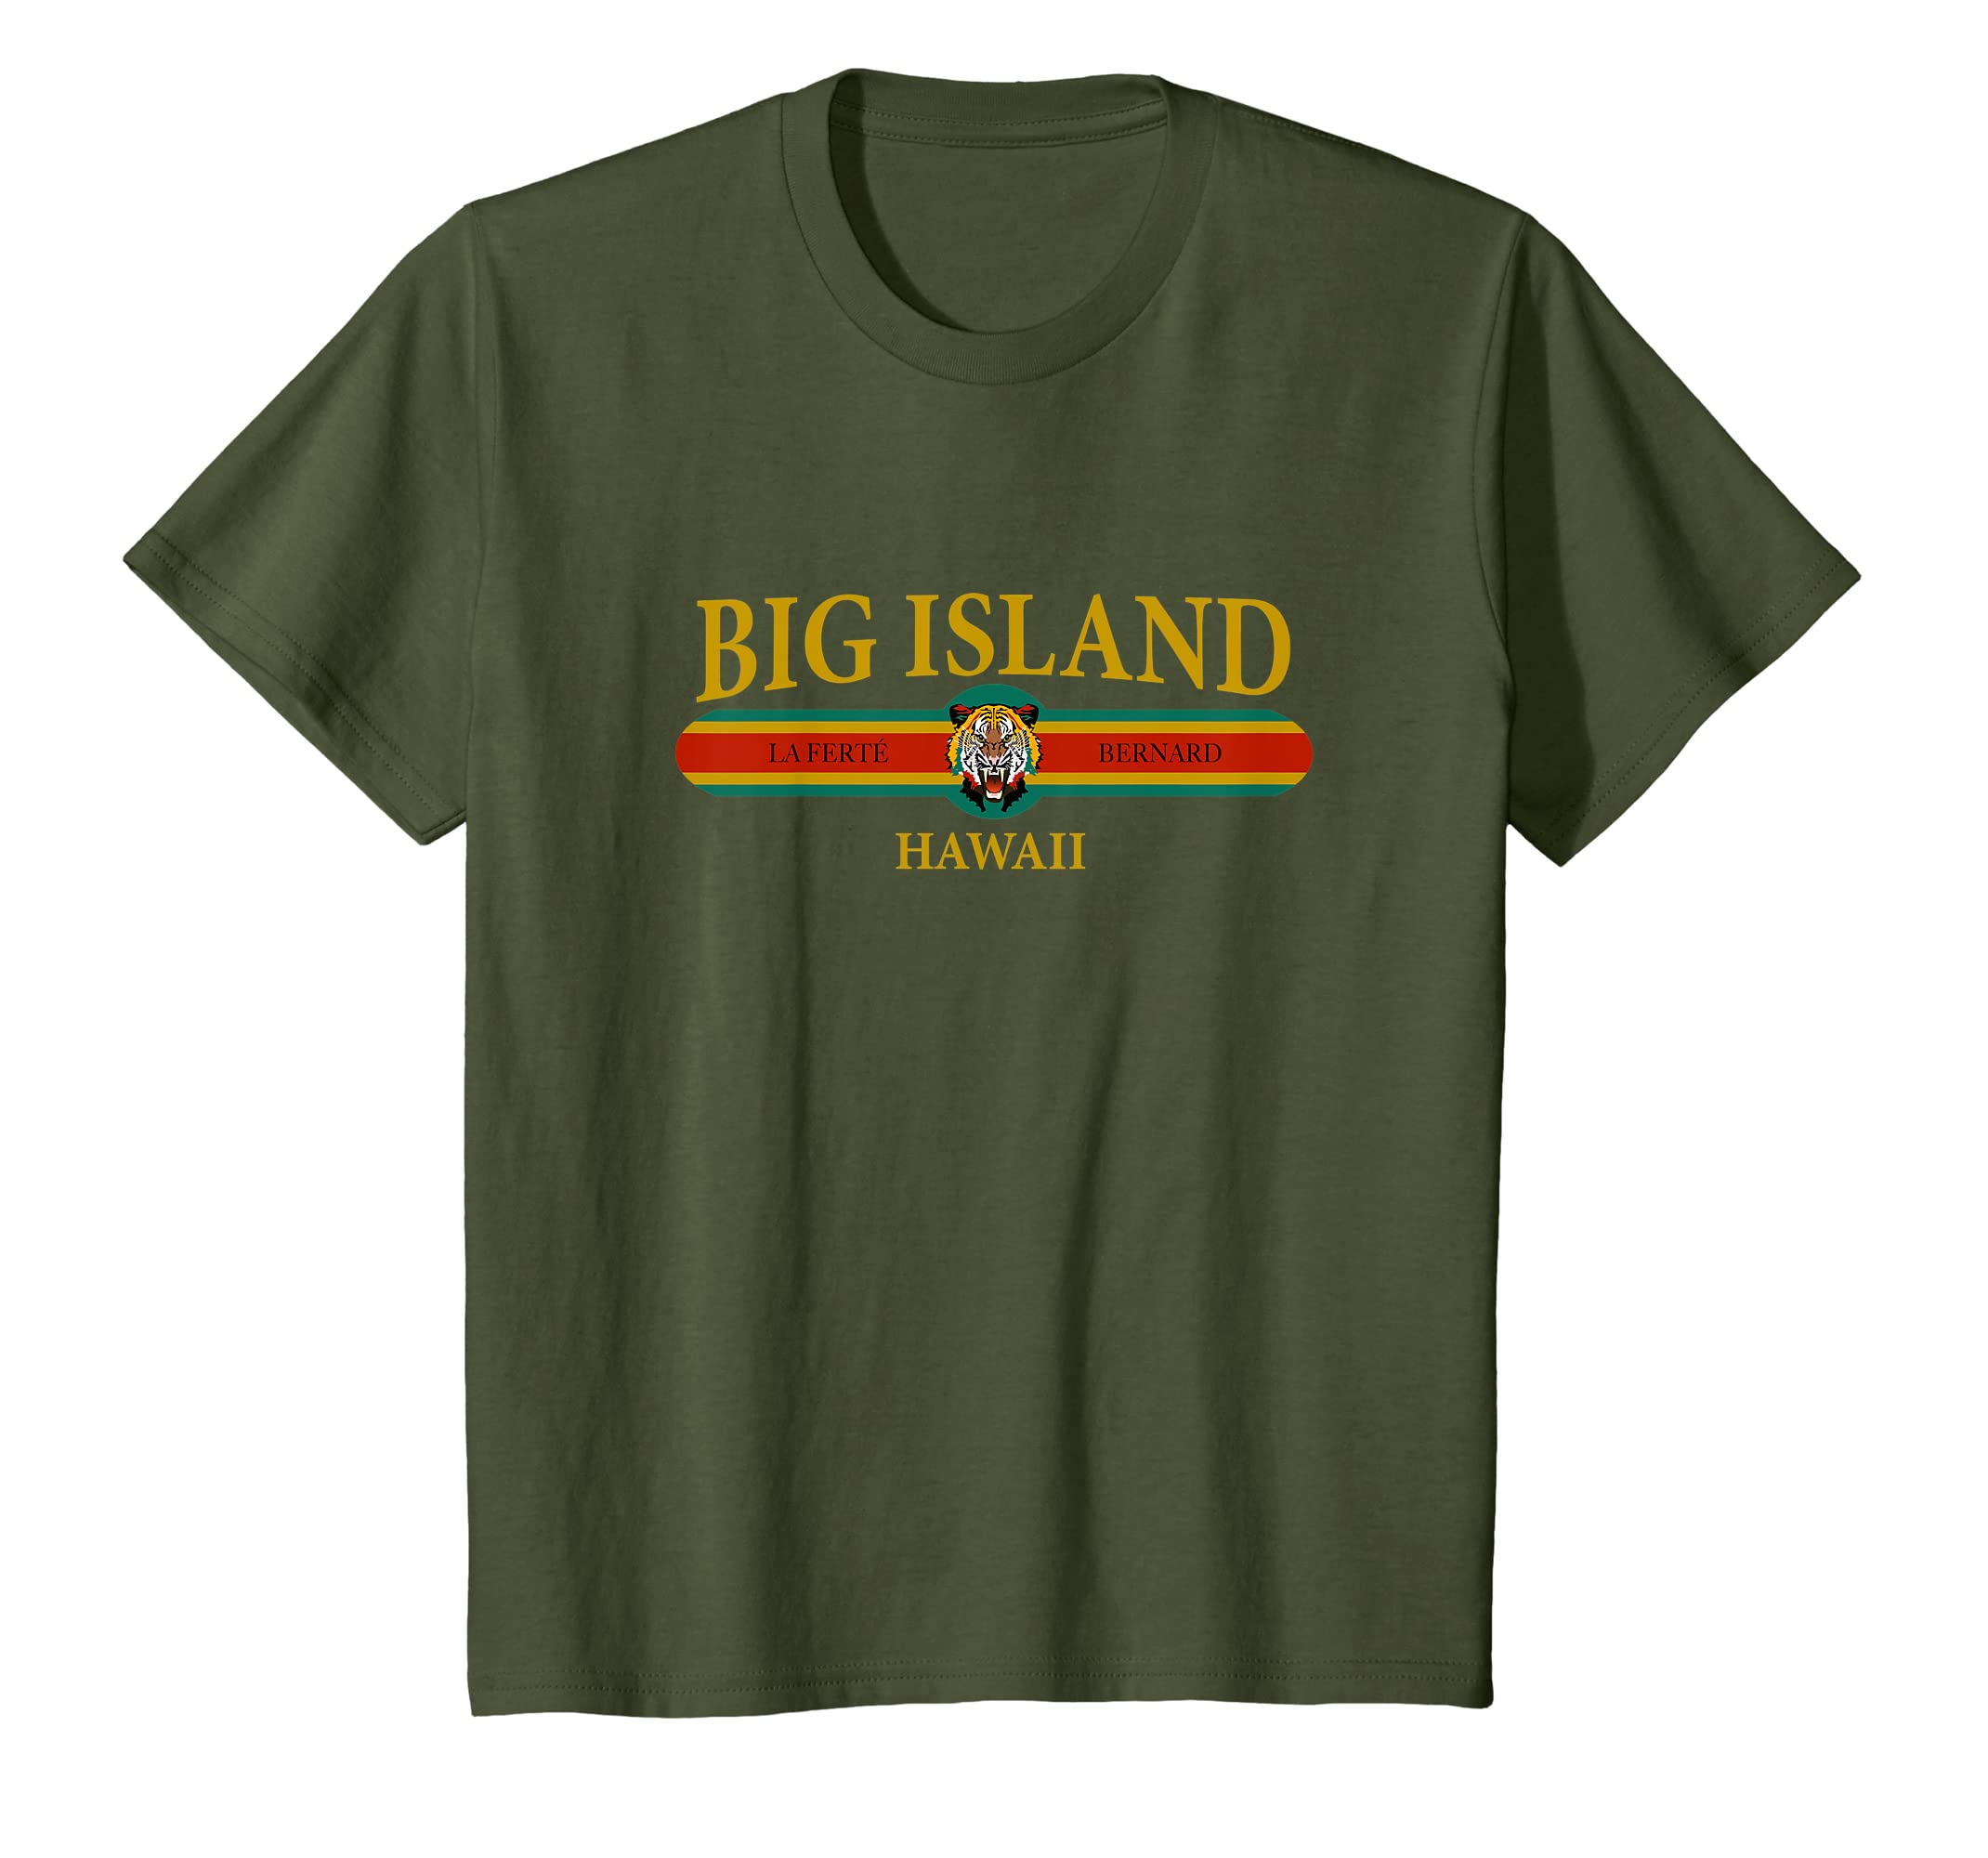 cefb337db1 Amazon.com: Big Island Hawaii T-shirt | Short Sleeve Graphic Tee ...